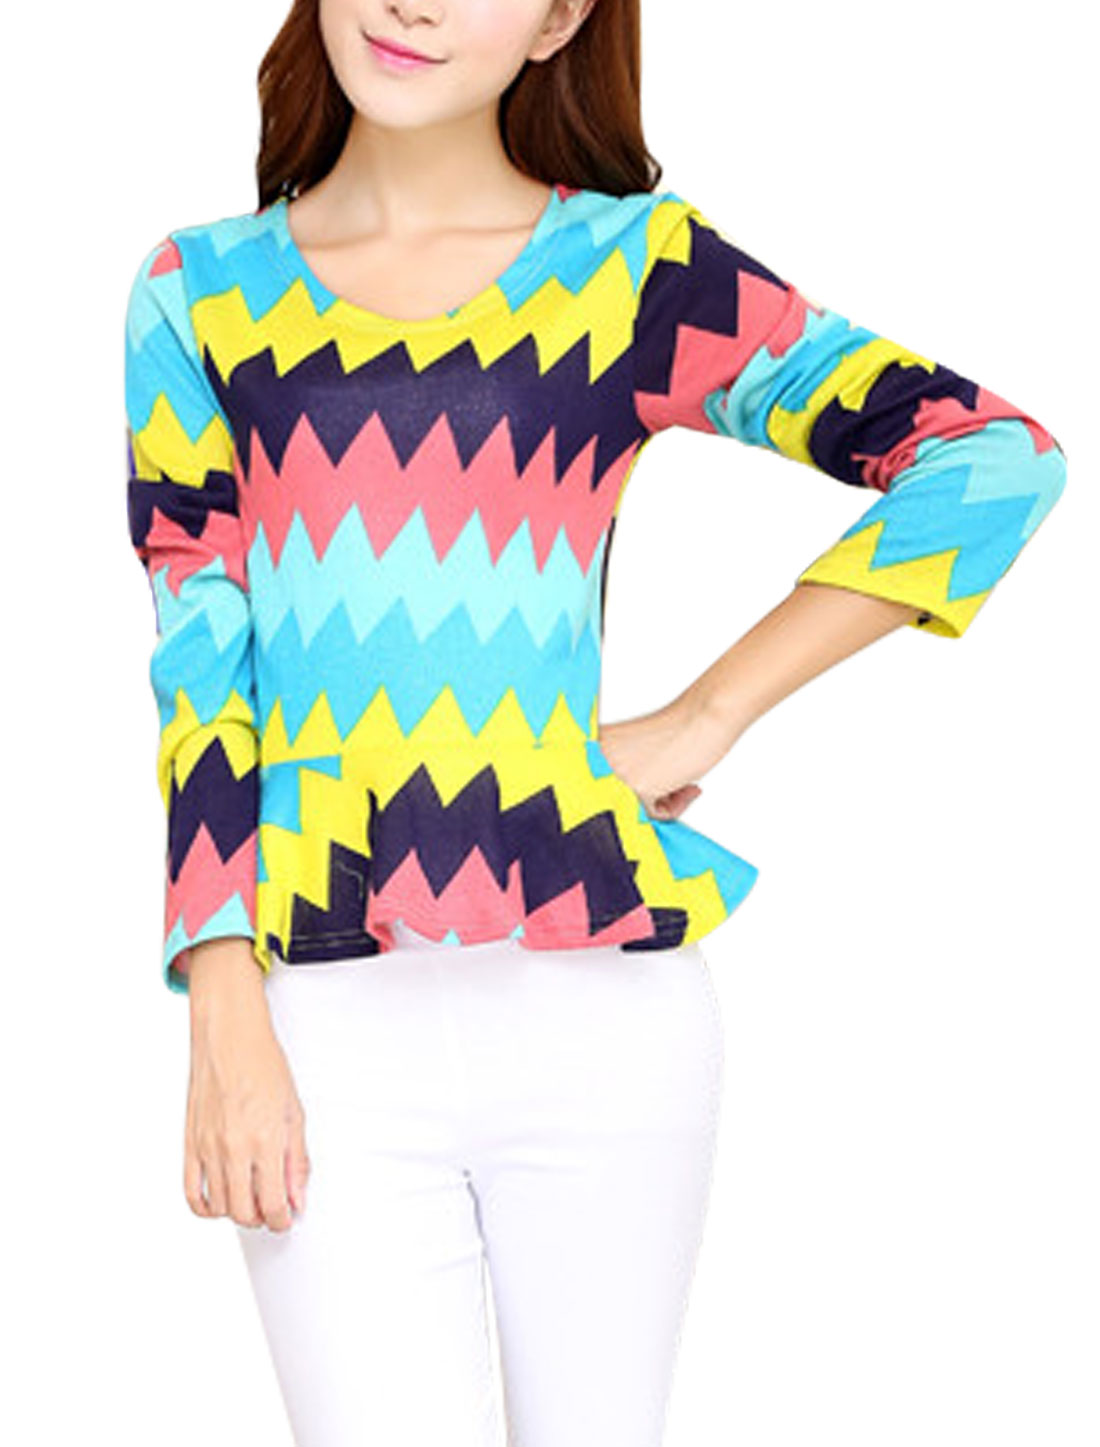 Women Zig-zag Pattern Long Sleeve Light Peplum Knit Top Multicolor XS